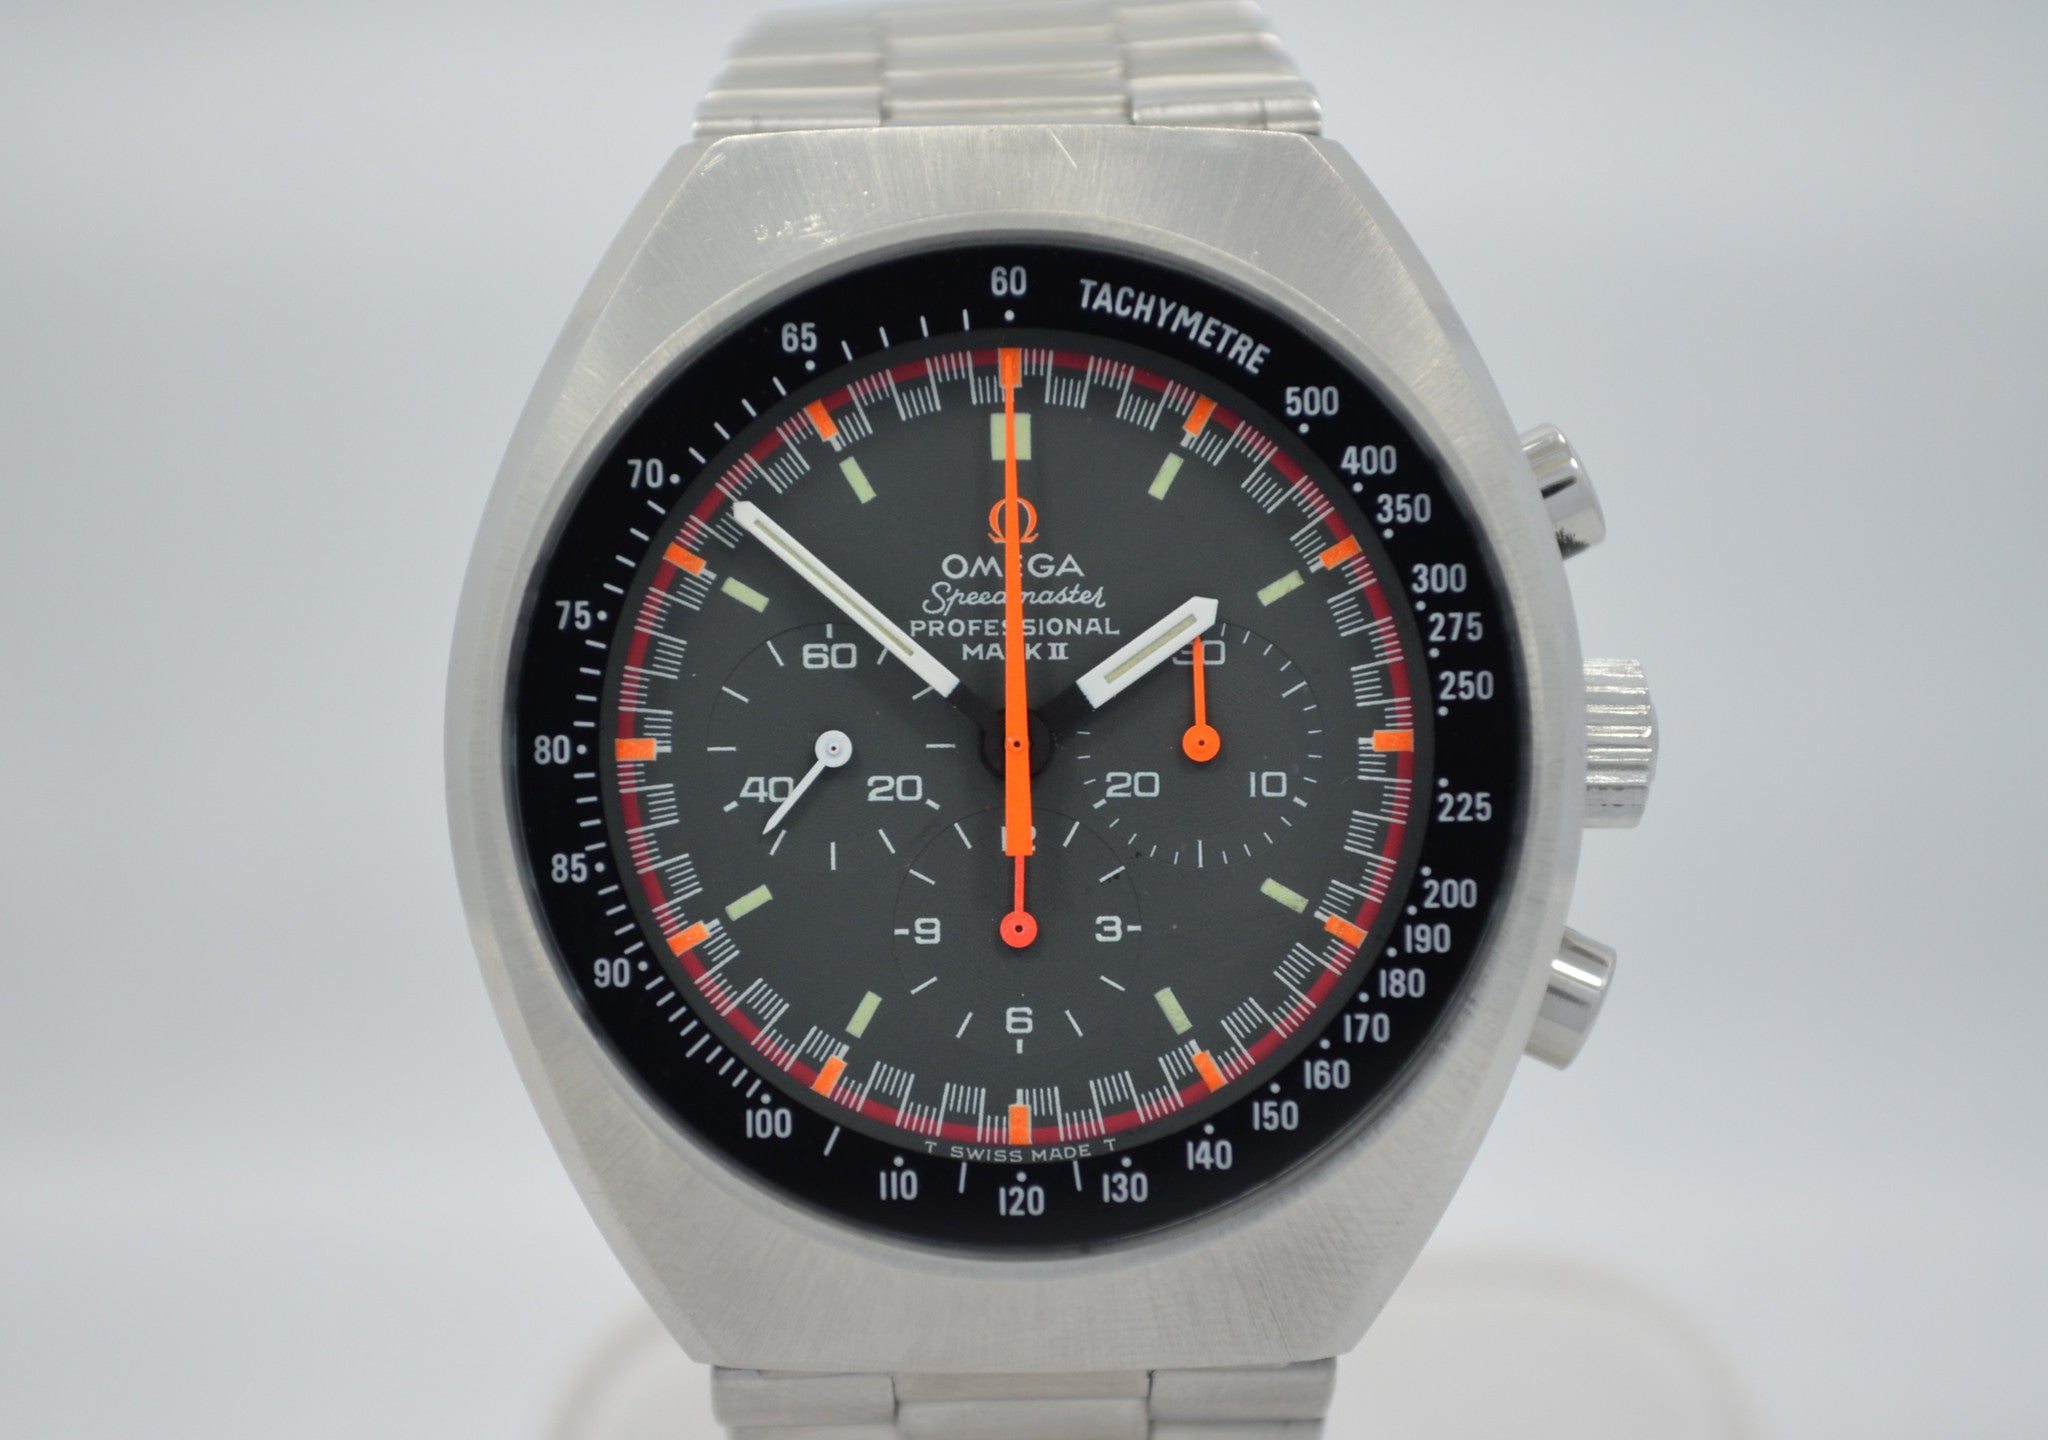 Vintage Omega Speedmaster Mark II 145.014 Chronograph Stainless Steel 861 Wristwatch - Hashtag Watch Company